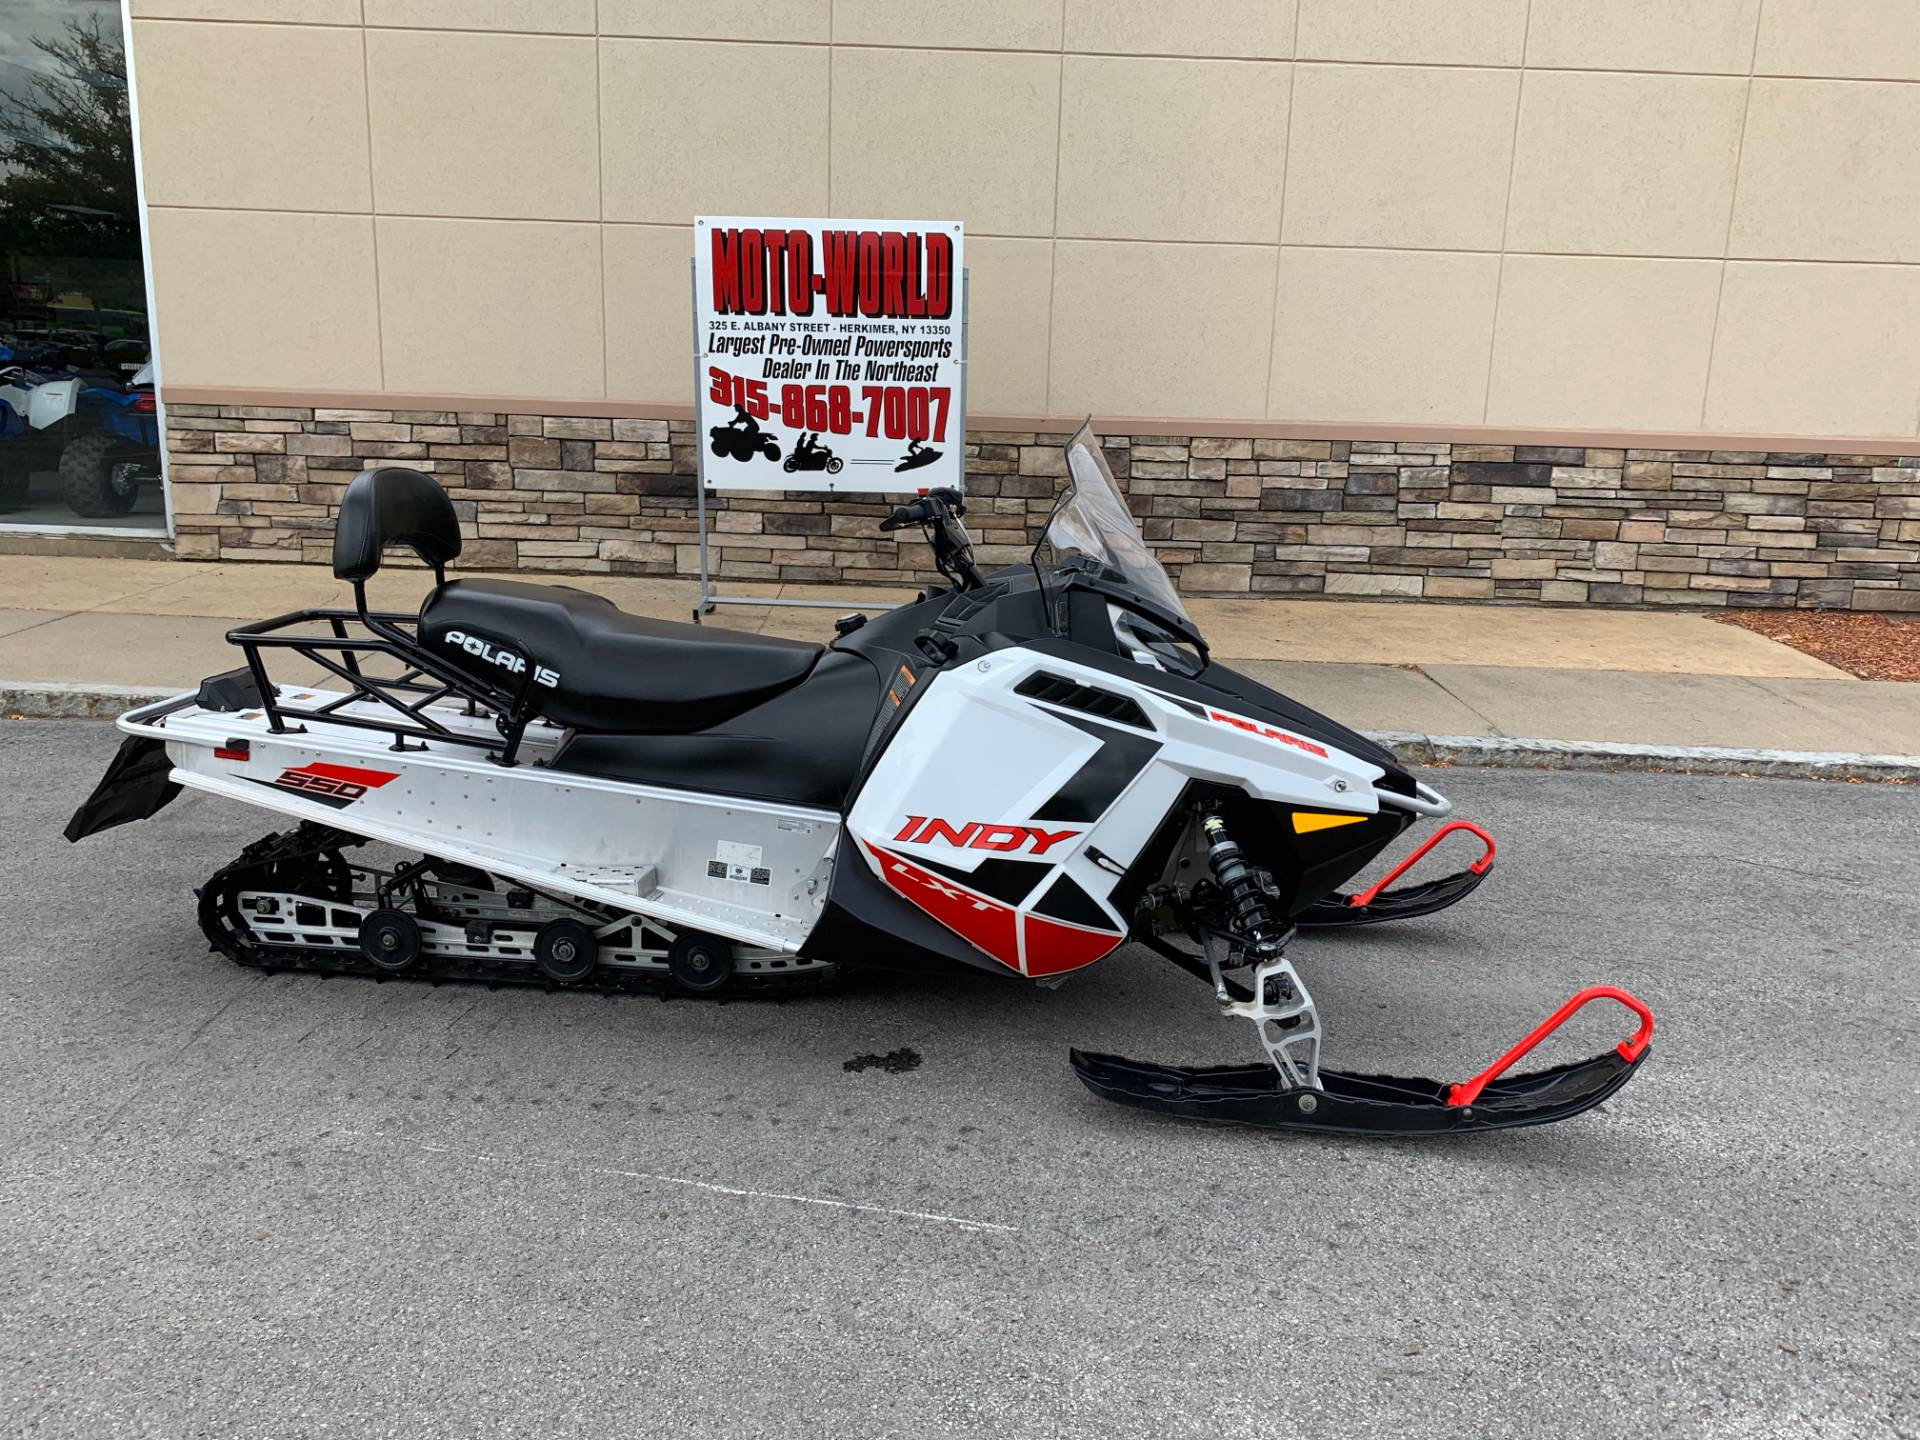 2019 Polaris 550 INDY LXT ES in Herkimer, New York - Photo 1